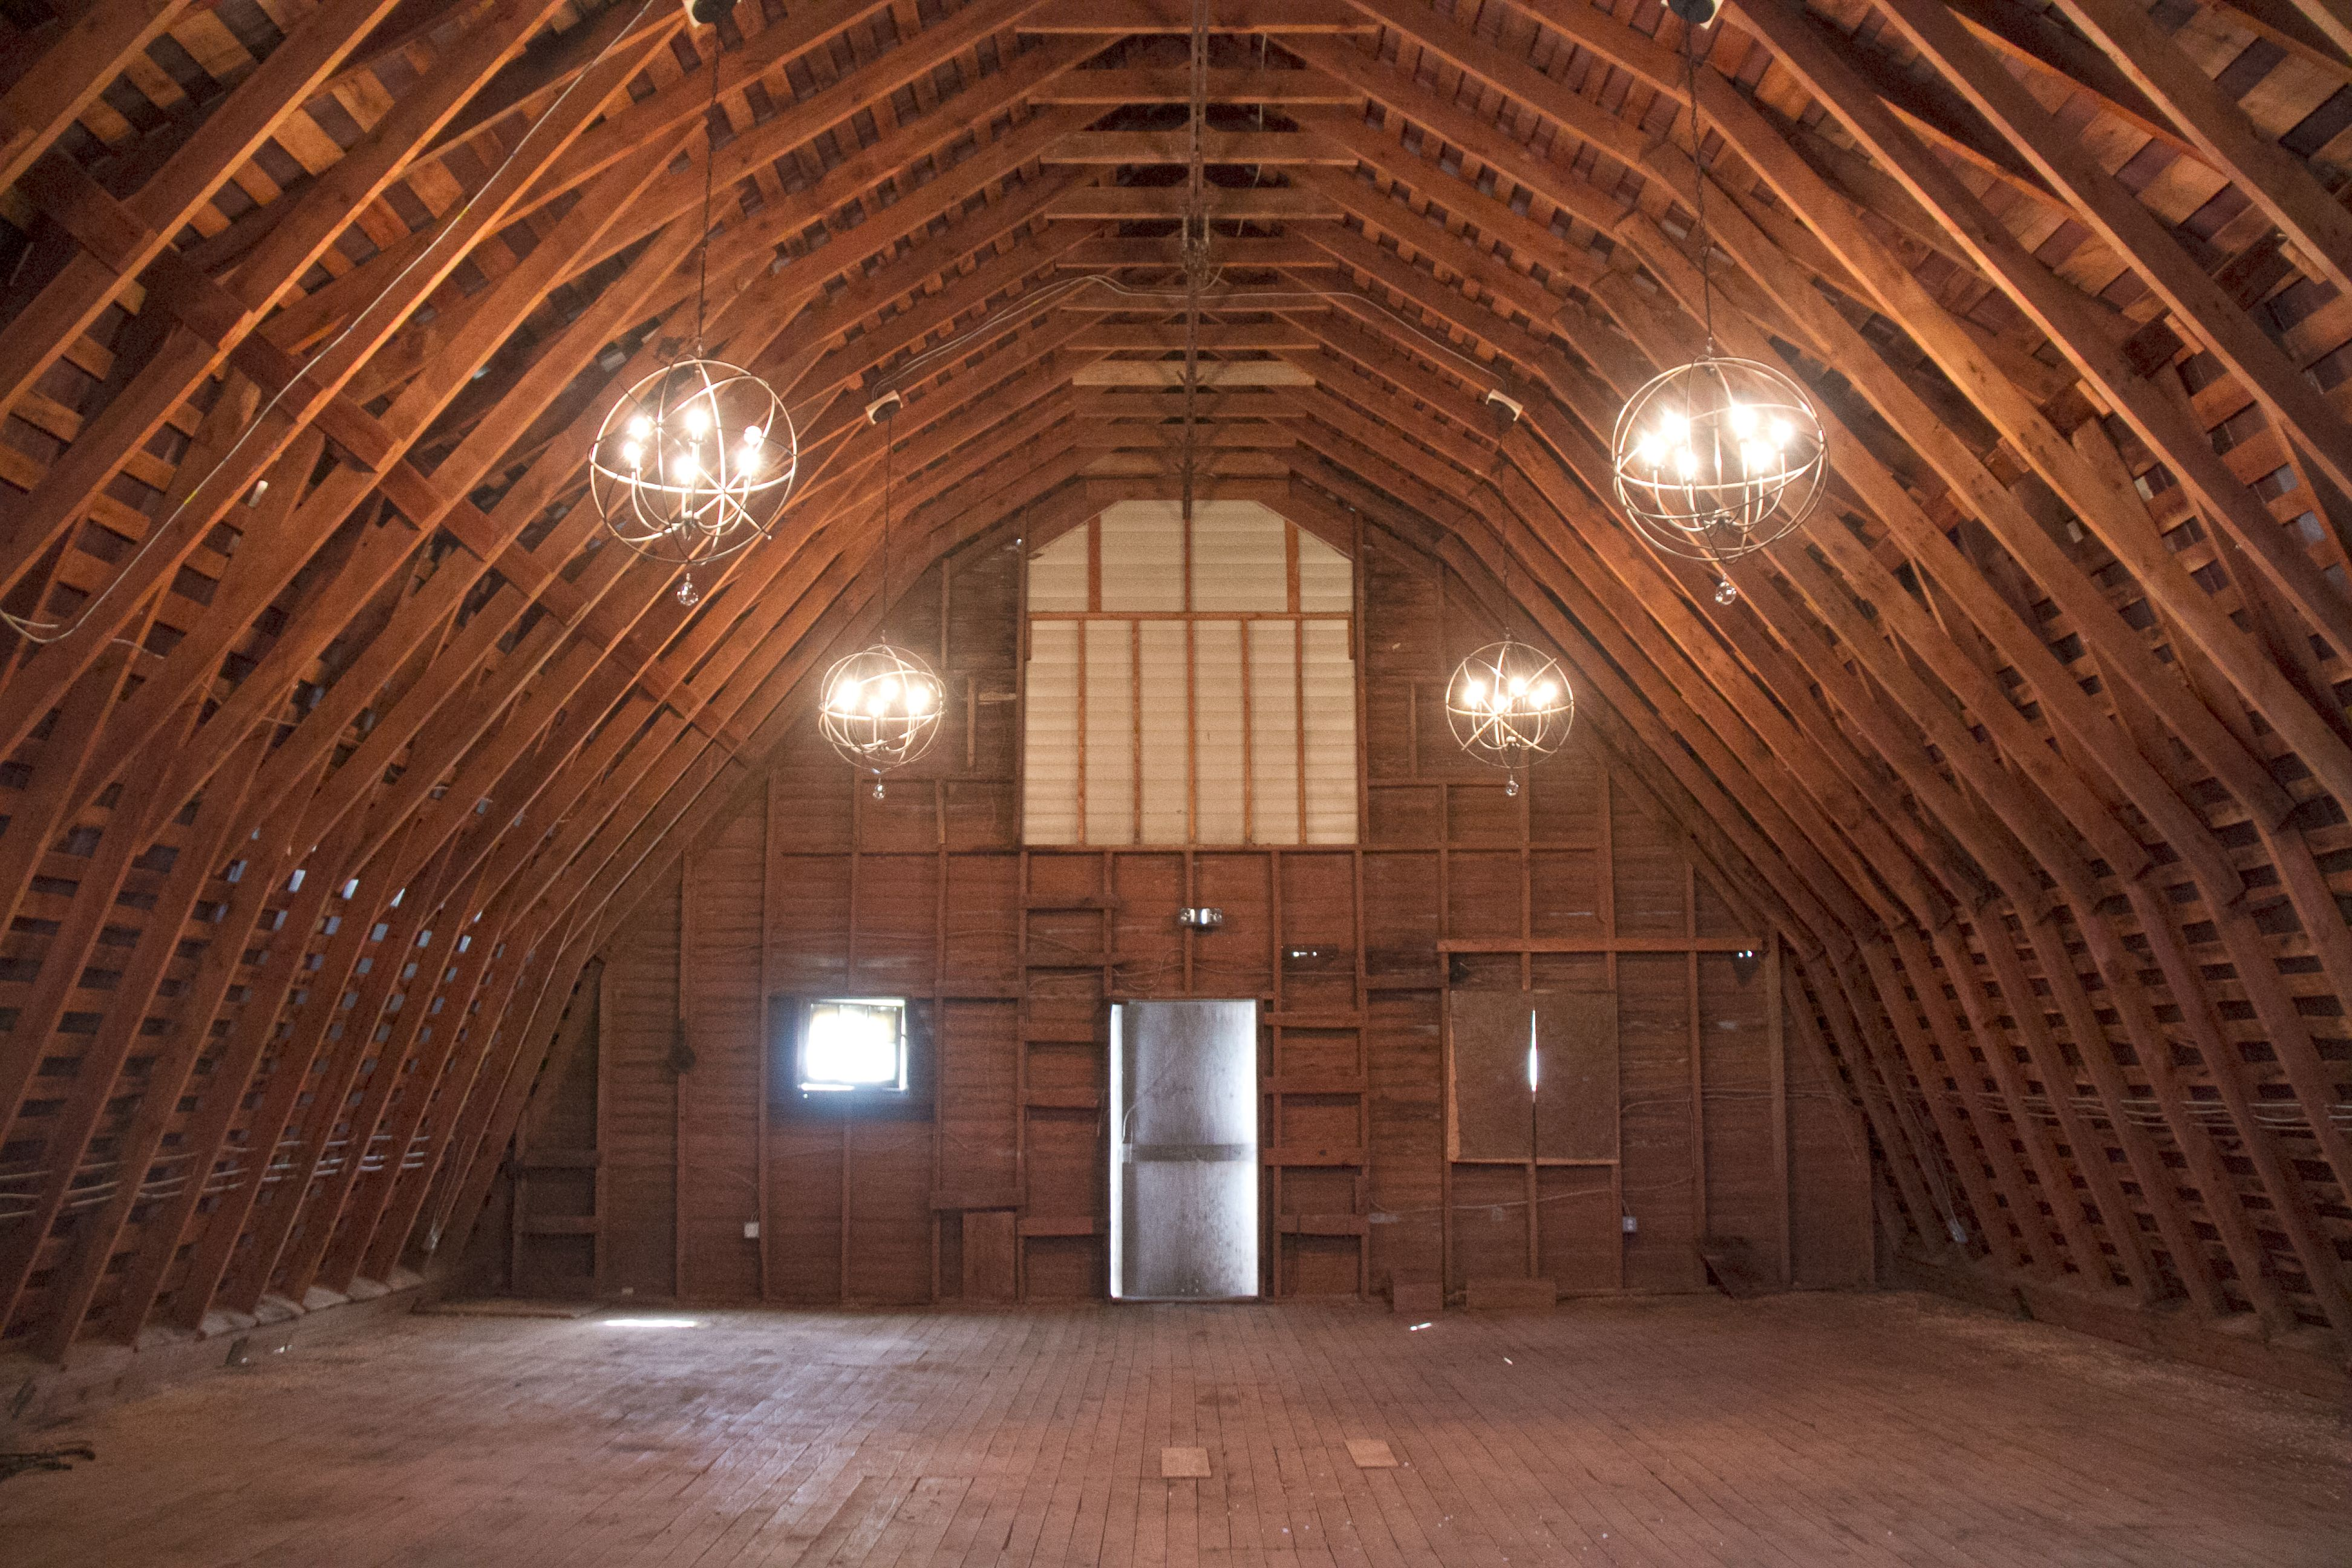 48 Fields Is A Rustic Wedding Venue In Leesburg Virginia Located Loudon County The Features Restored Dairy Barn For Weddings